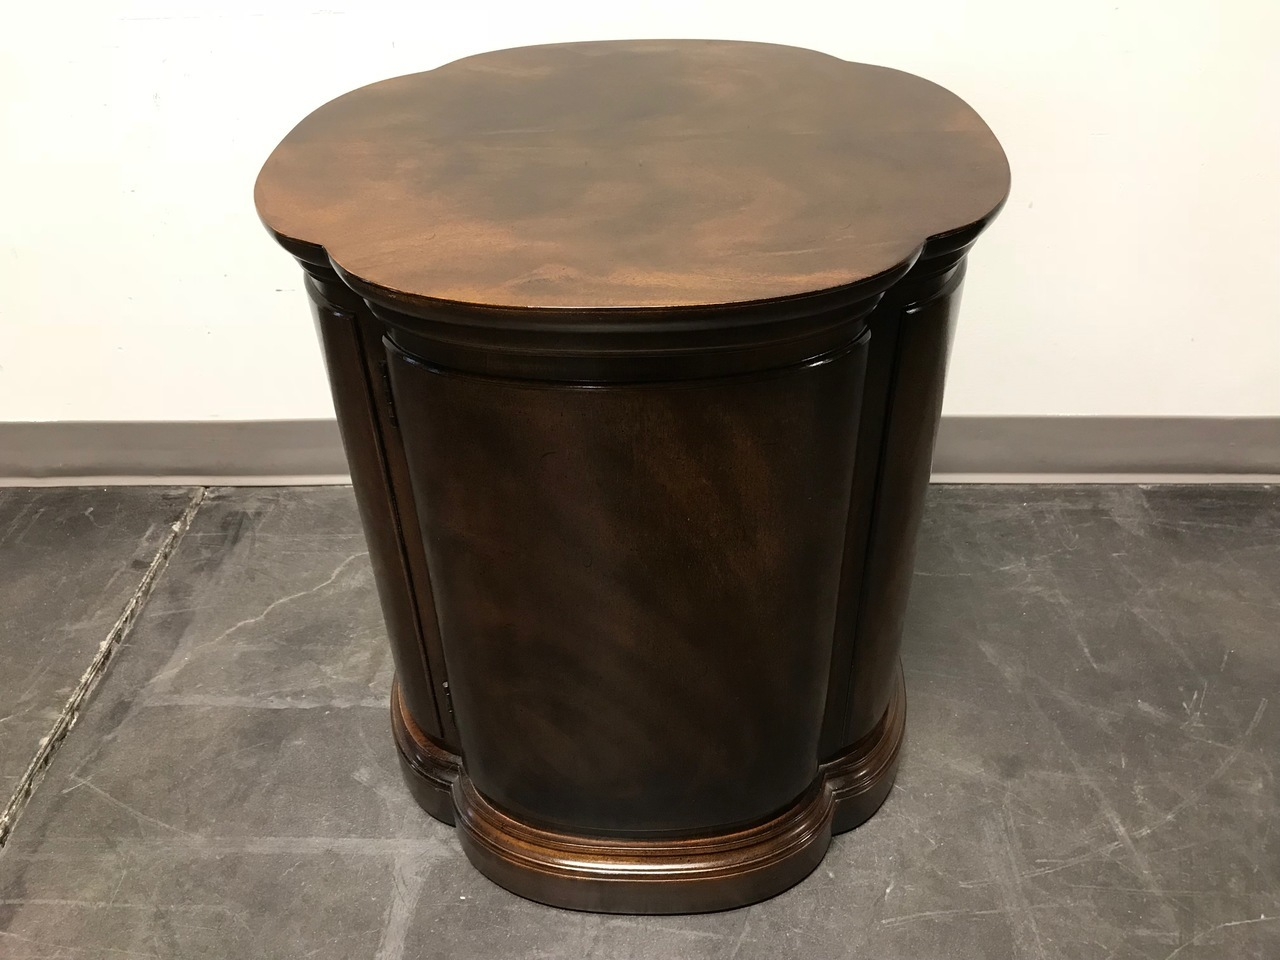 sold out henredon walnut clover shaped end side accent table cabinet boyds fine furnishings victorian tables edmonton large square mirrored coffee outdoor bar cover round marble